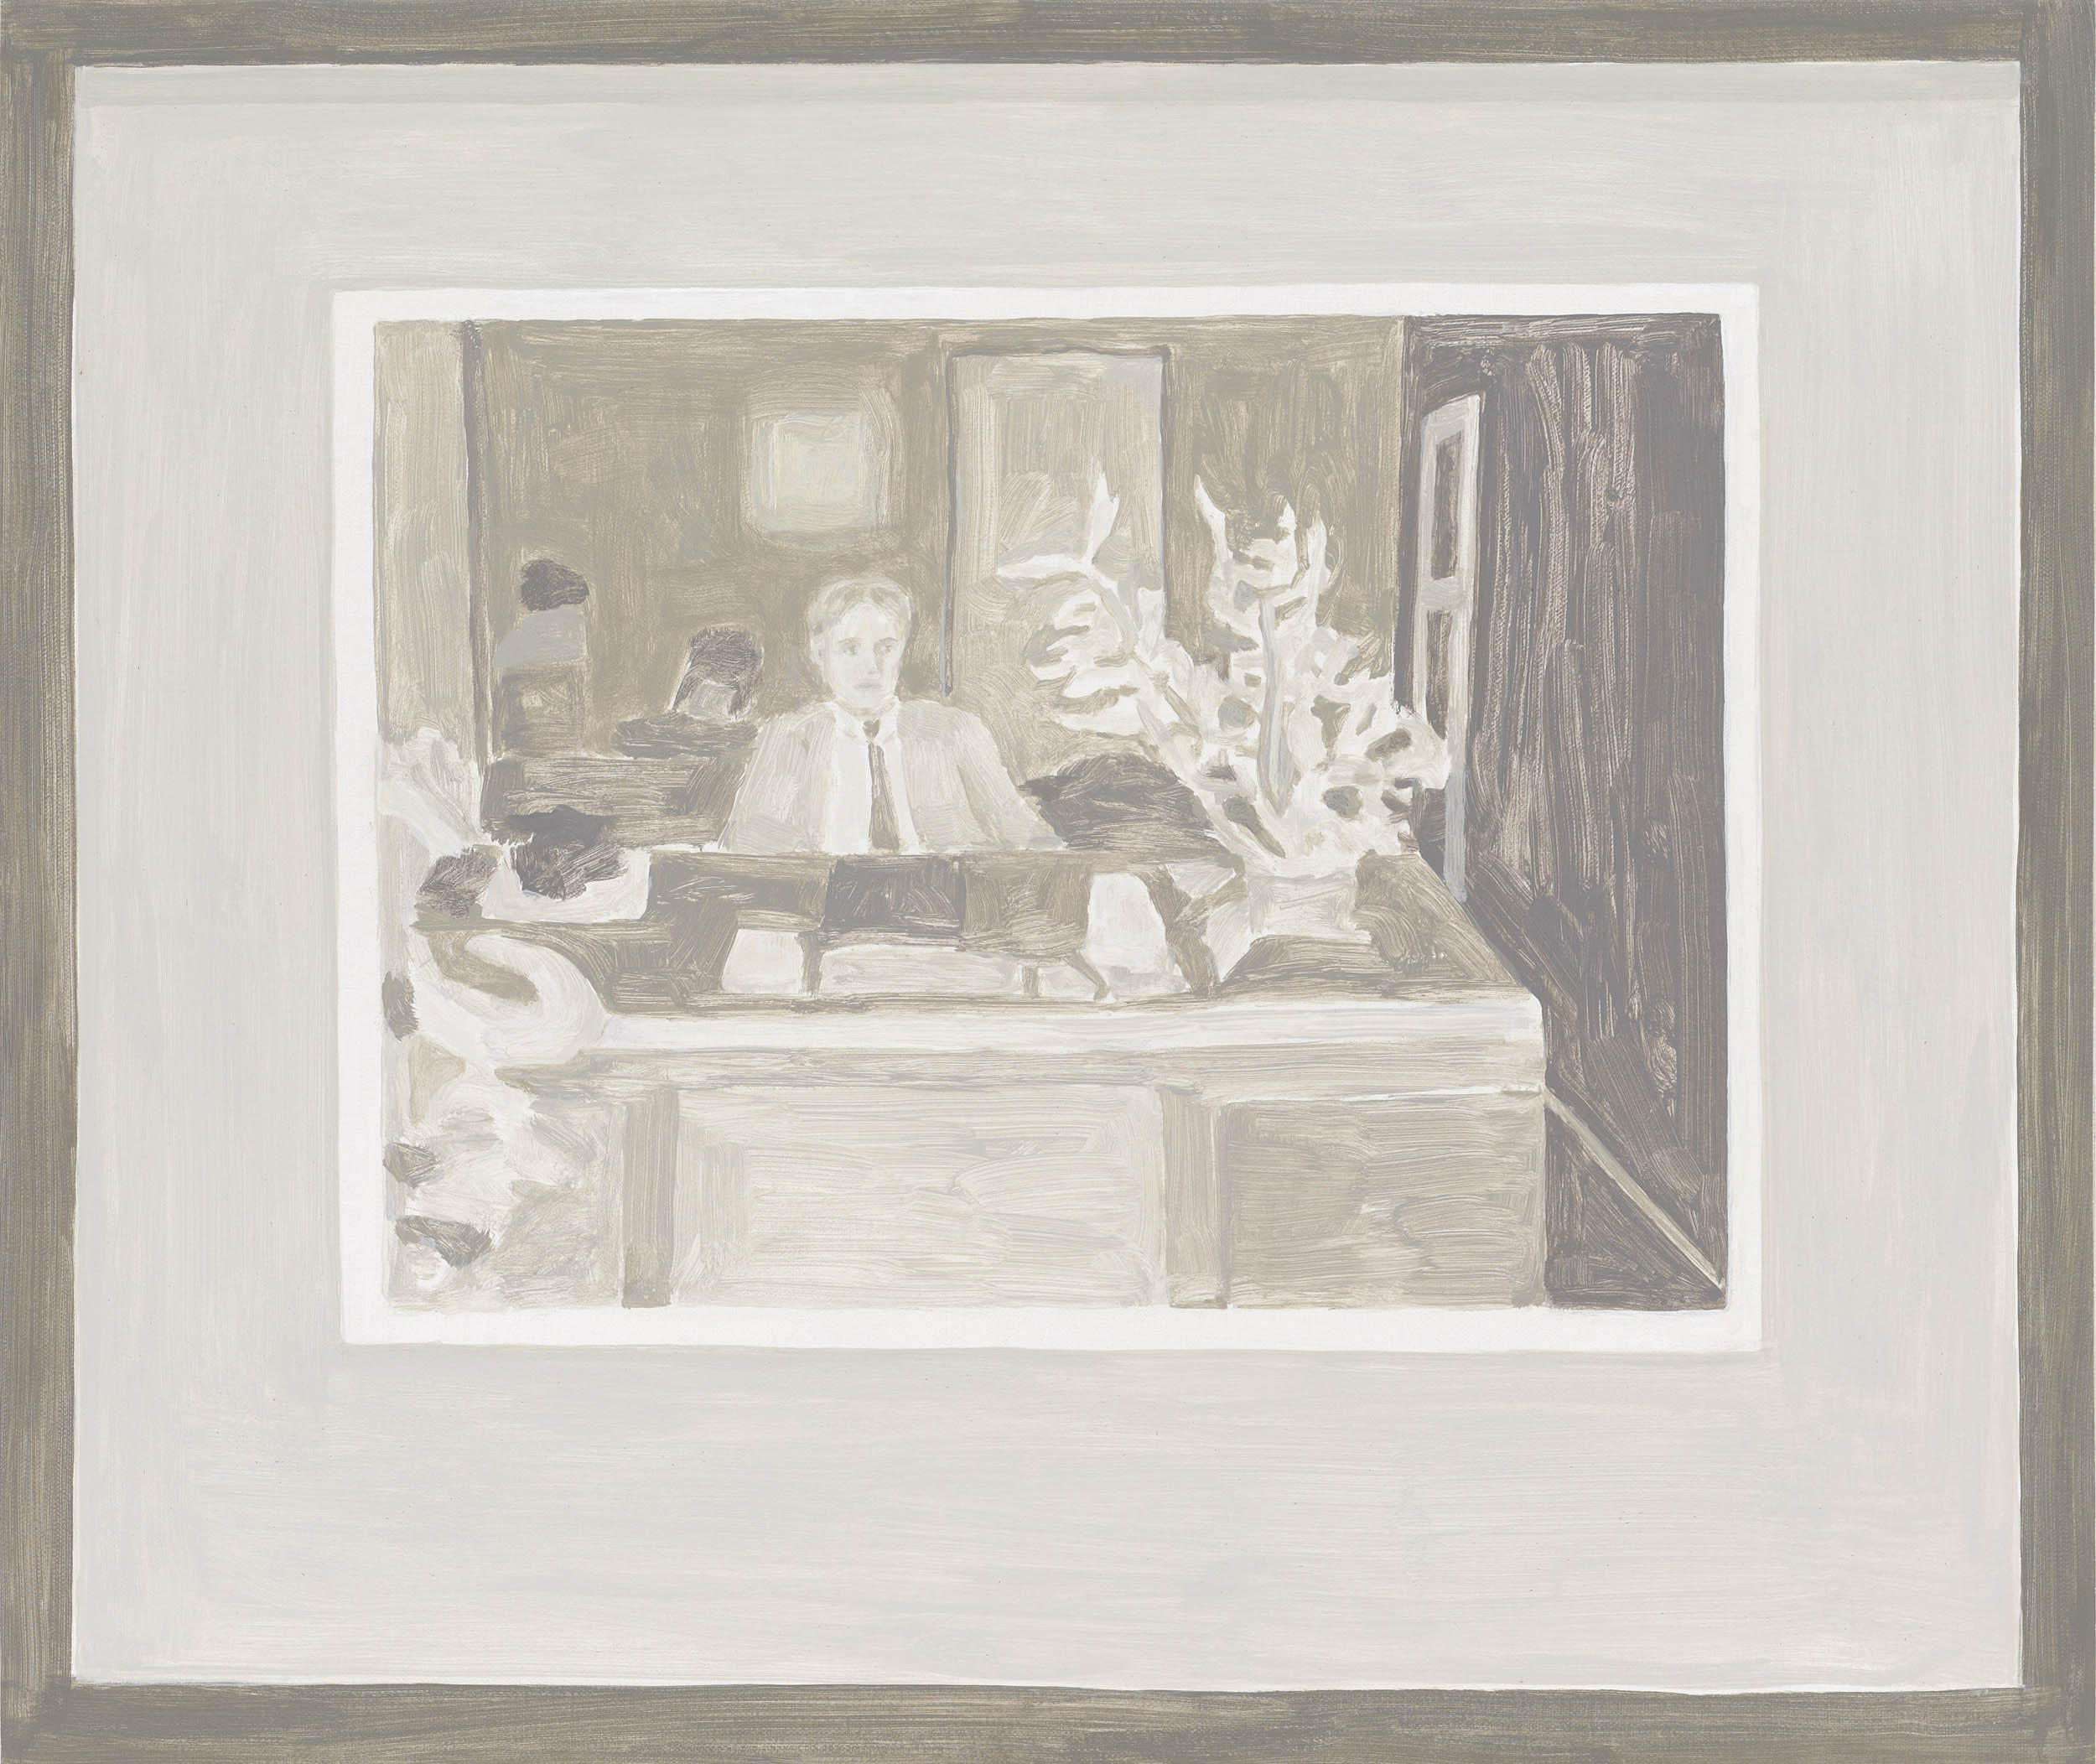 Framed Photo: Man at Desk, acrylic on canvas over board, 18 1/2 x 22 inches, 2011.